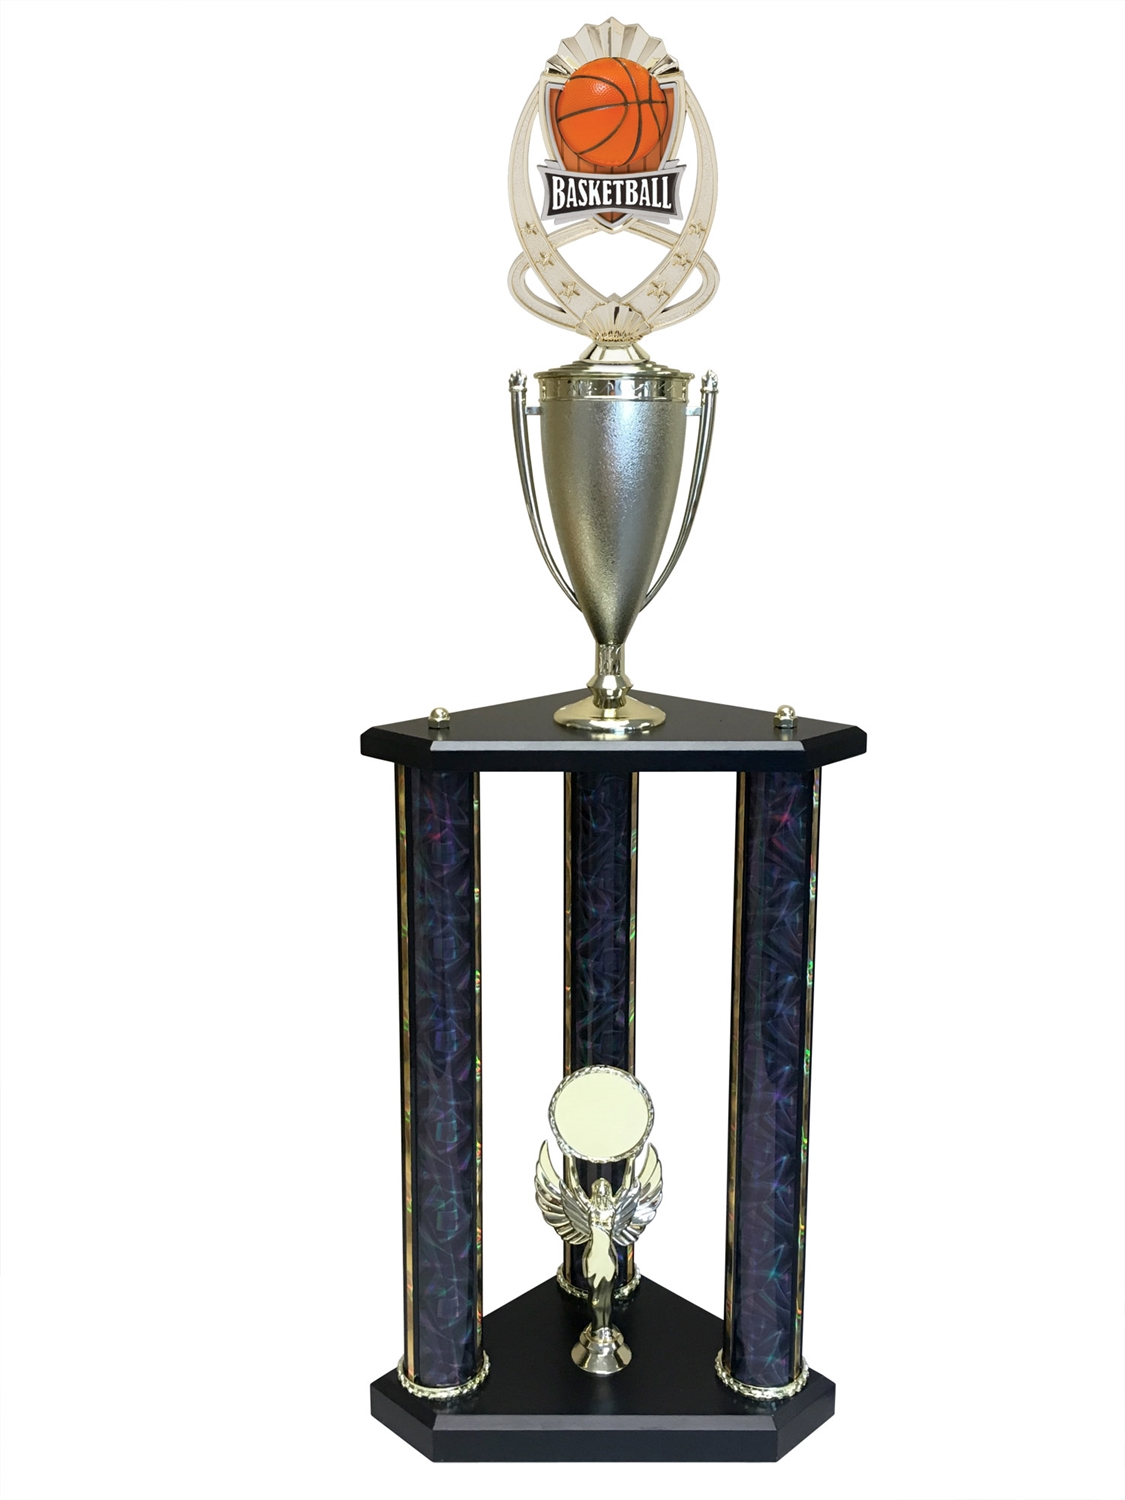 3 Post Basketball Trophy in 11 colors & 3 sizes